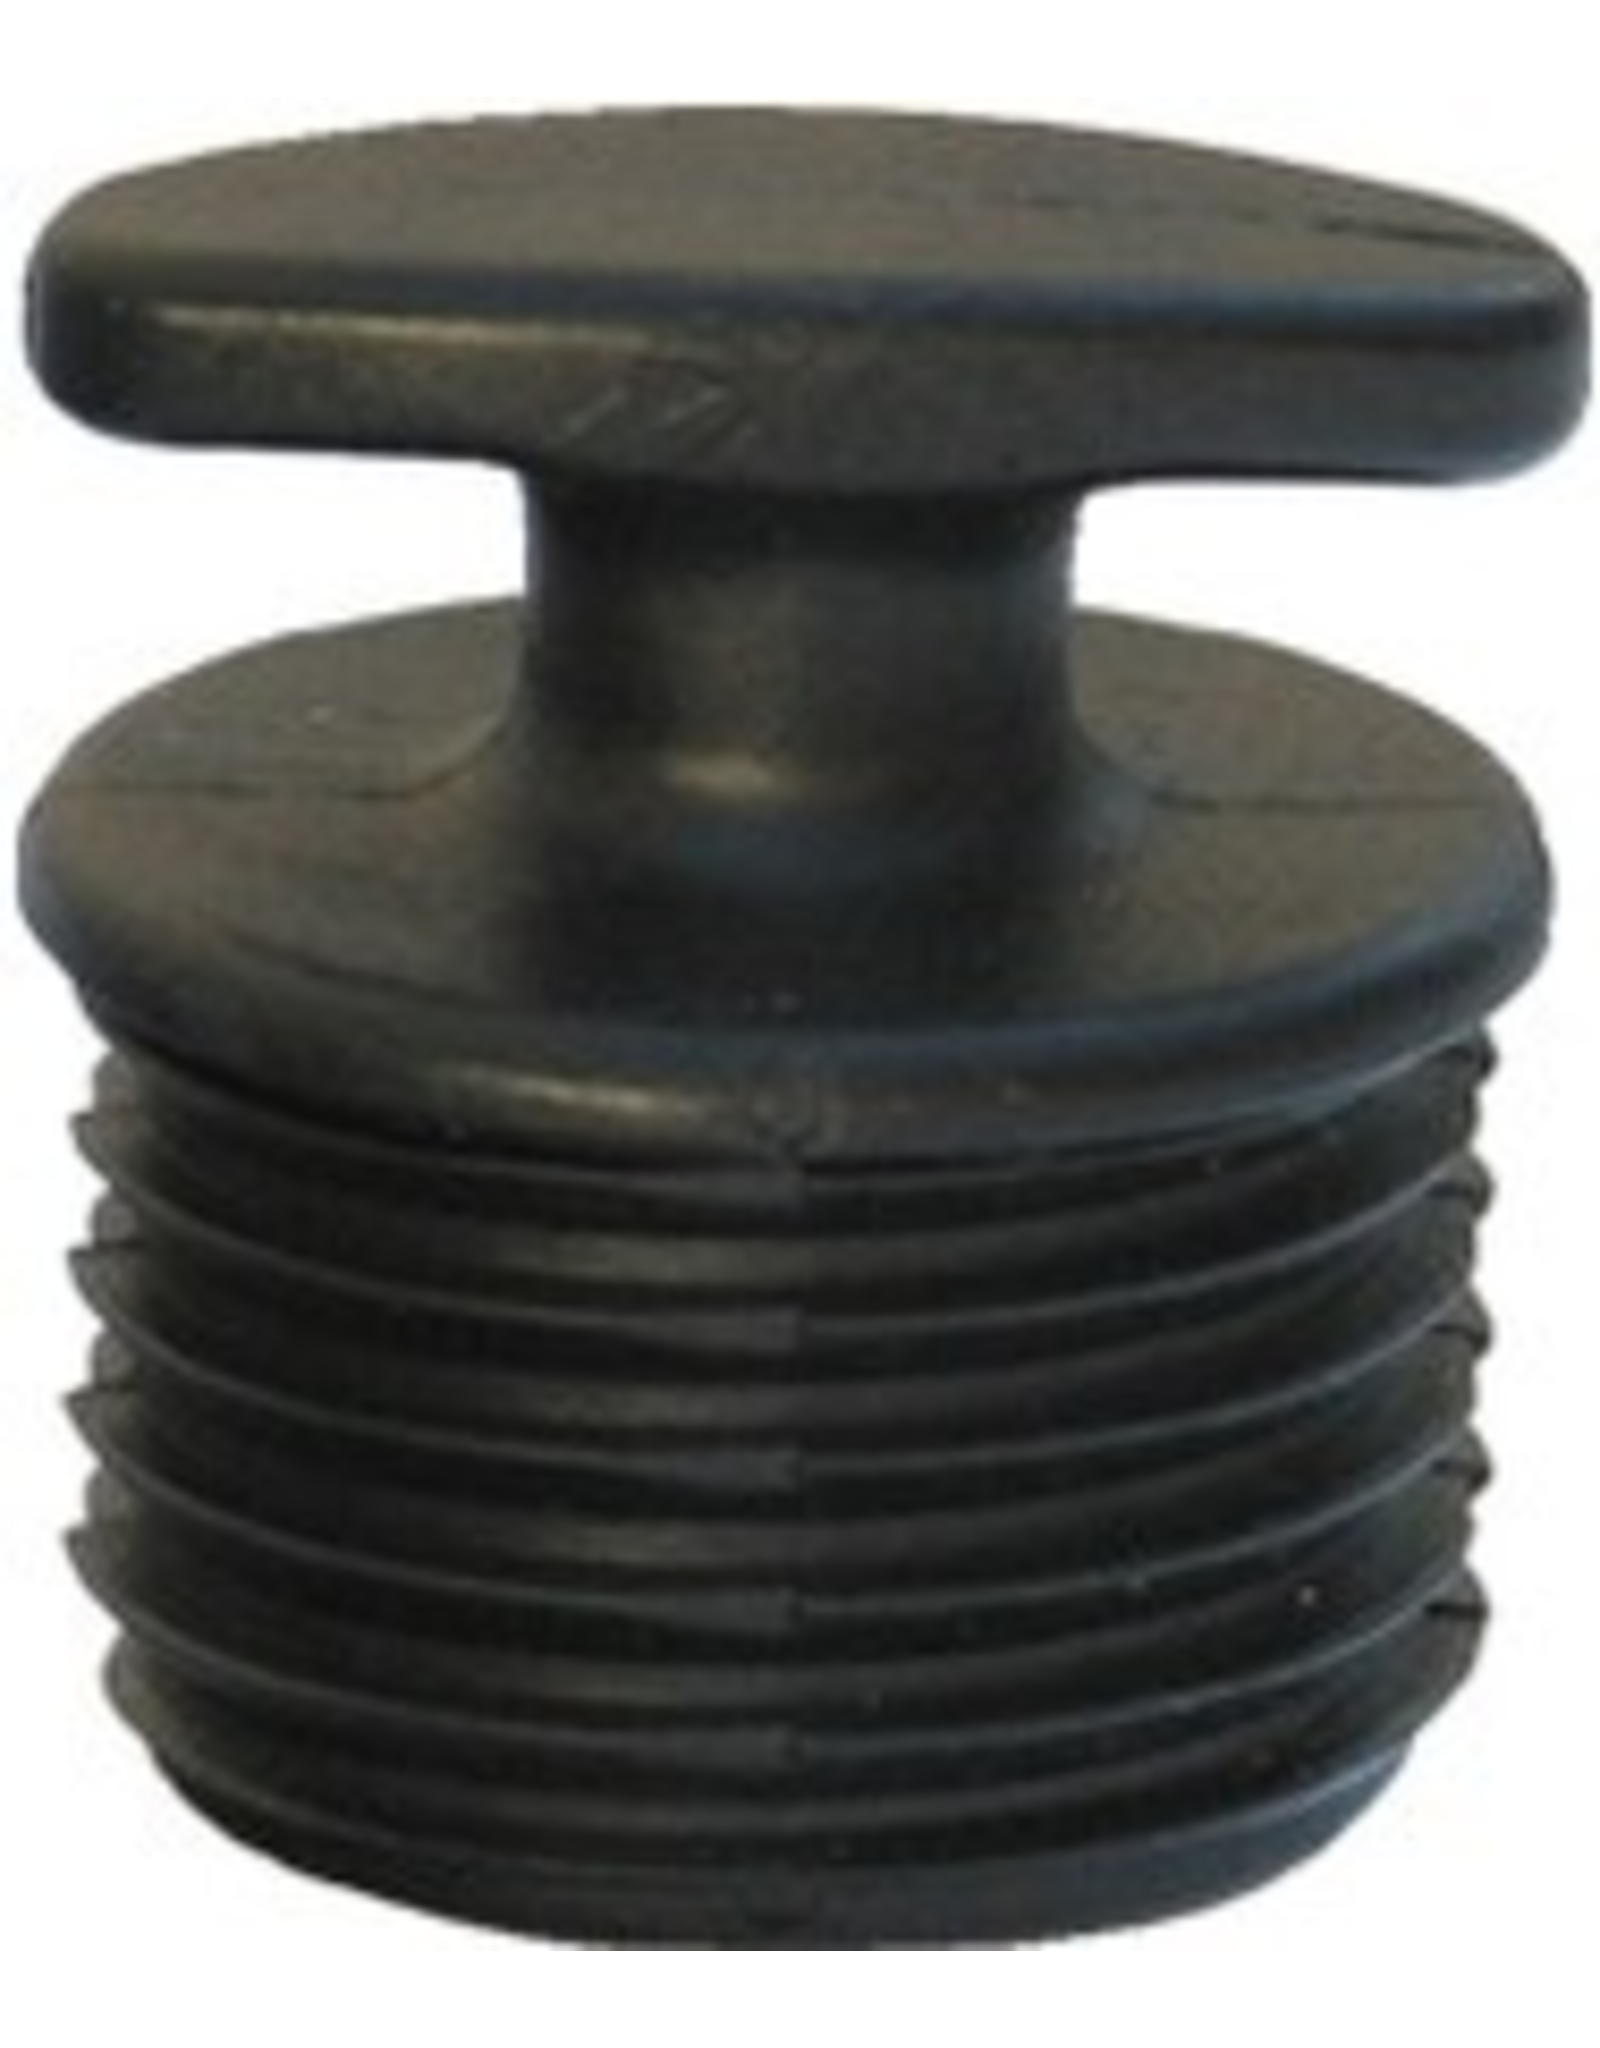 Hobie Hobie Screw in Cleat for Hobie Kayaks, X-37